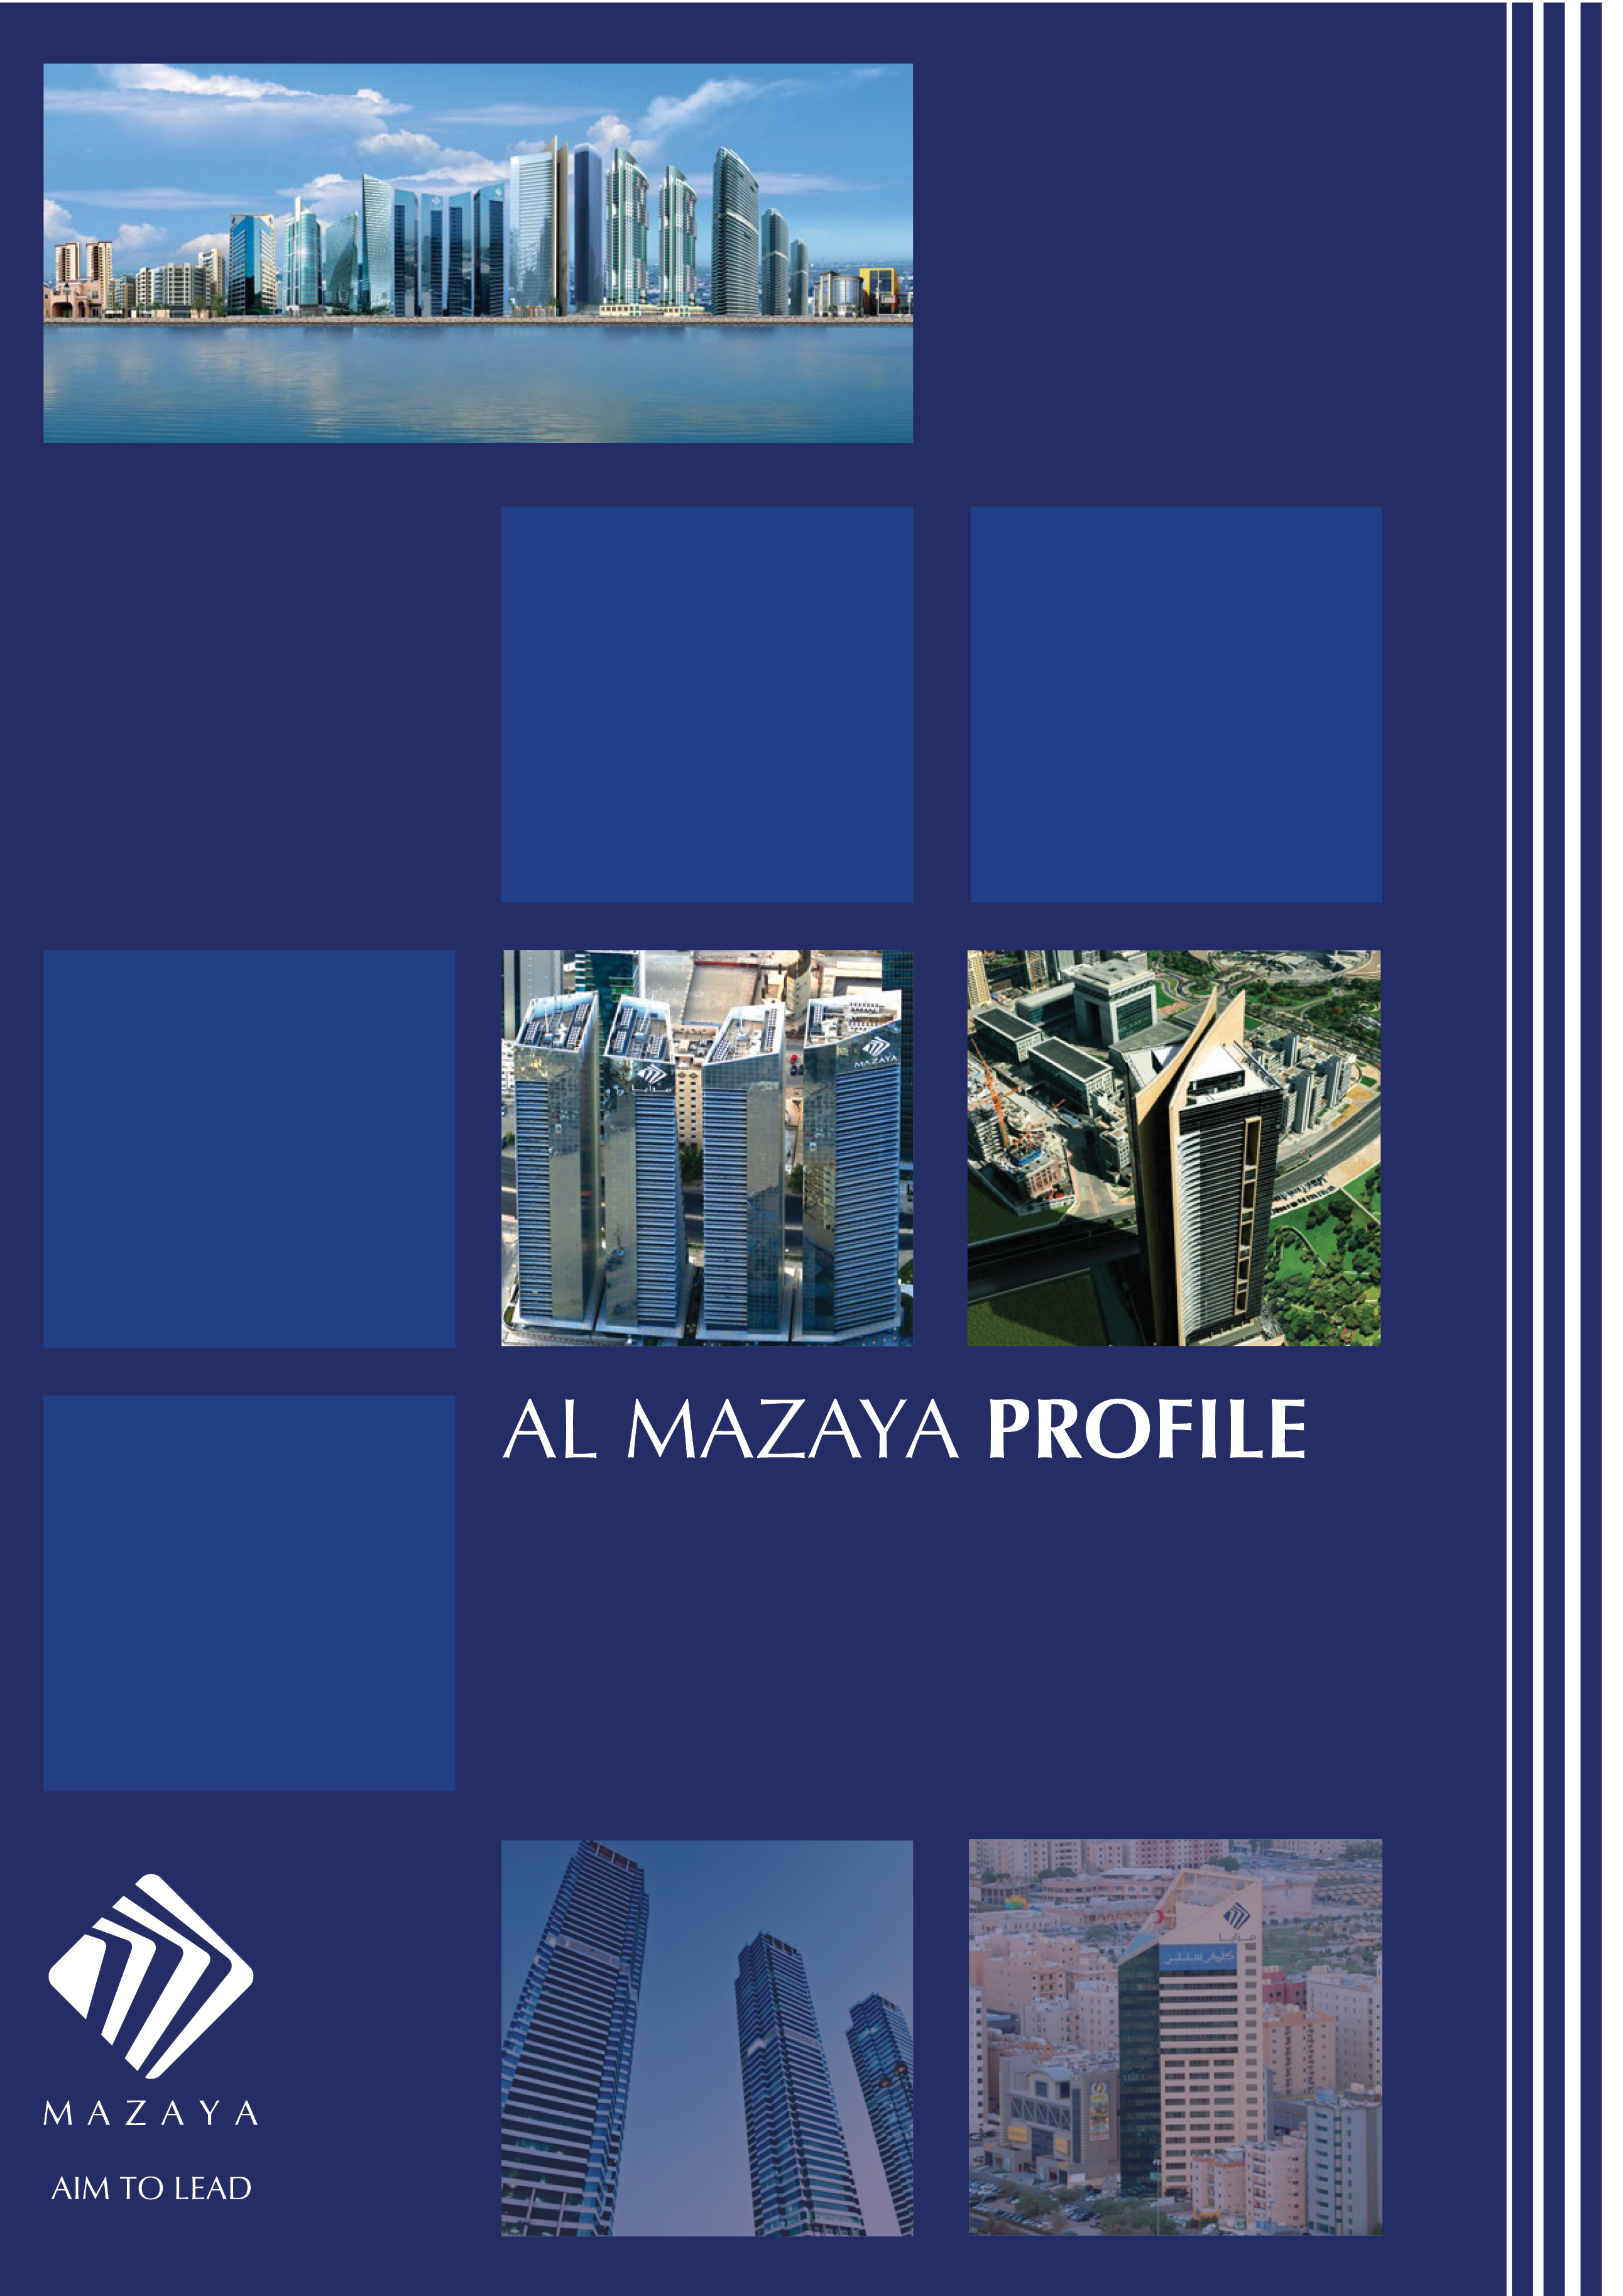 mazaya profile summary - Real Estate Profile Summary